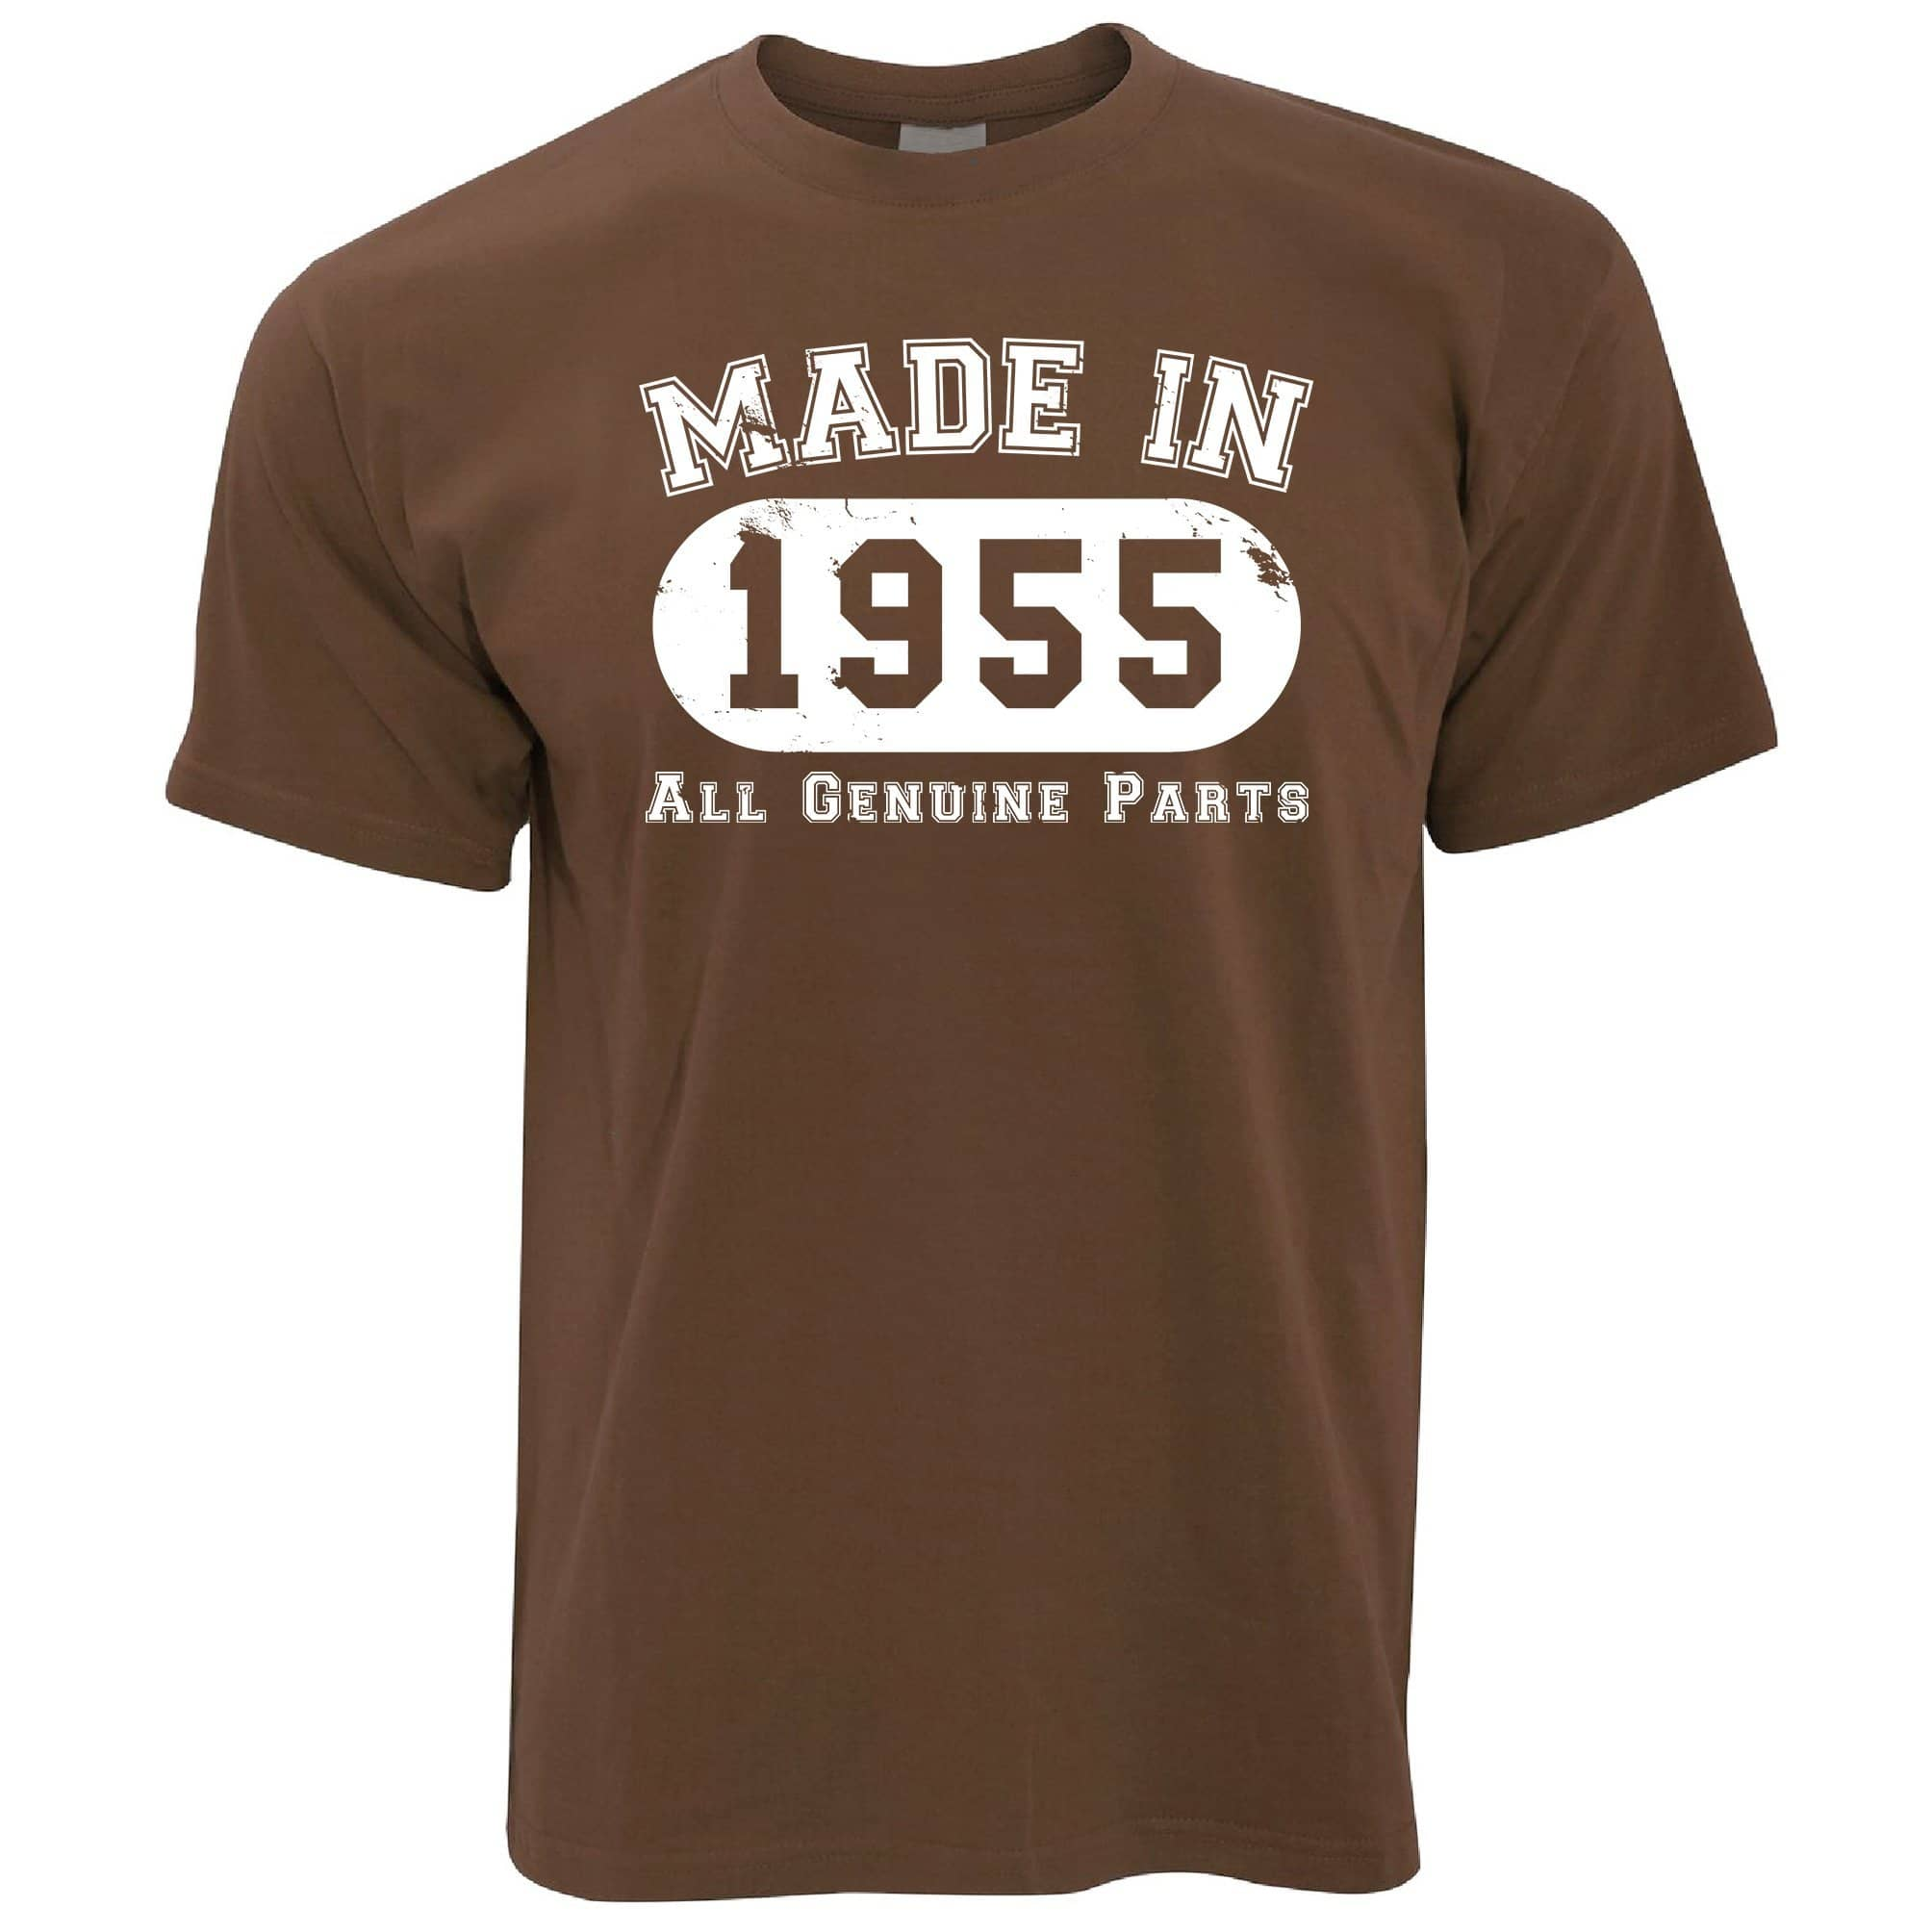 Birthday T Shirt Made in 1955 All Genuine Parts